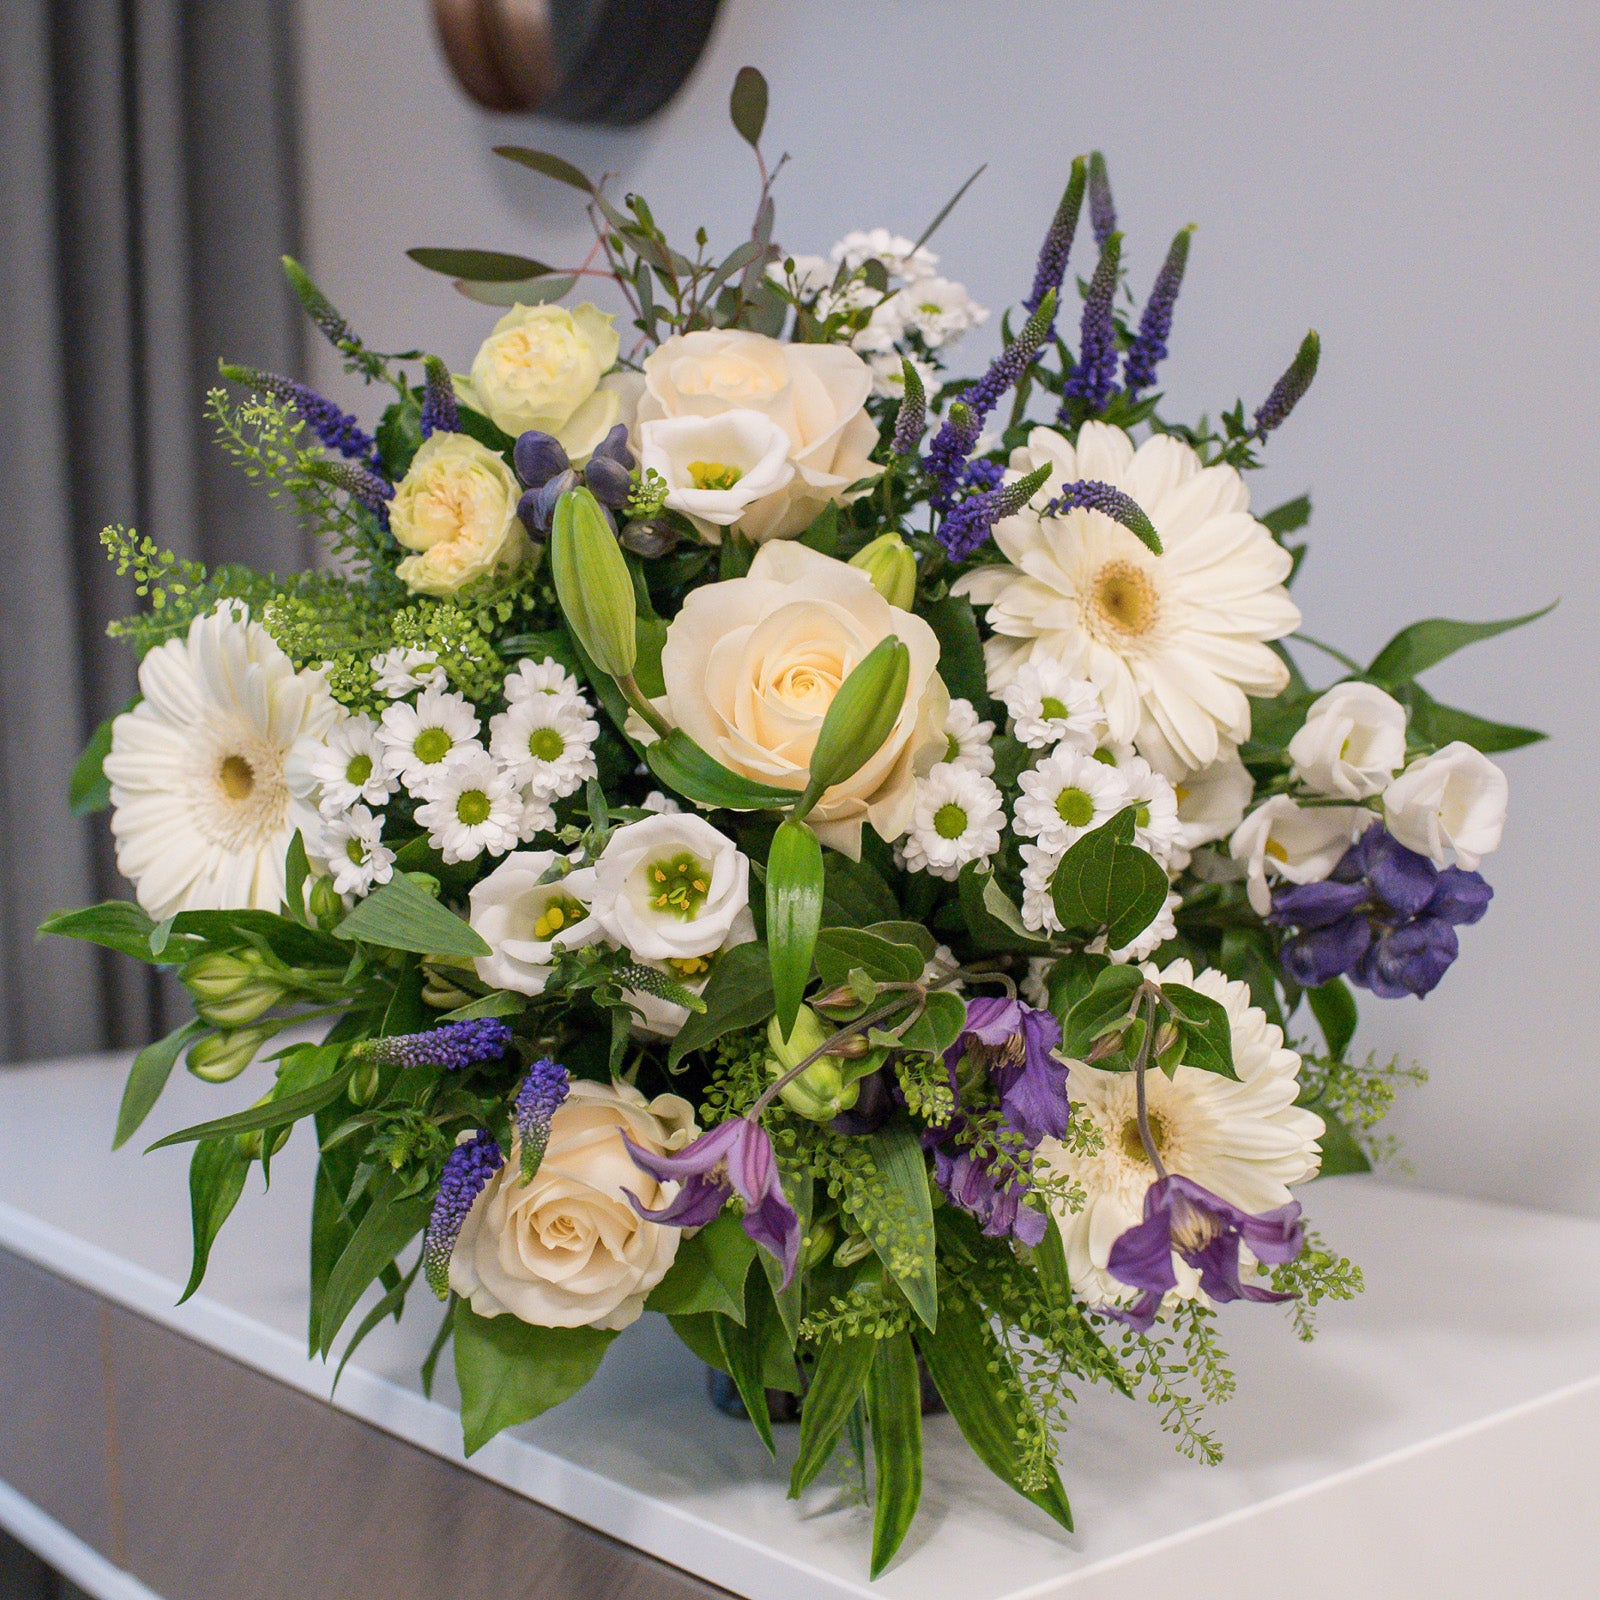 Hand-tied flower bouquet